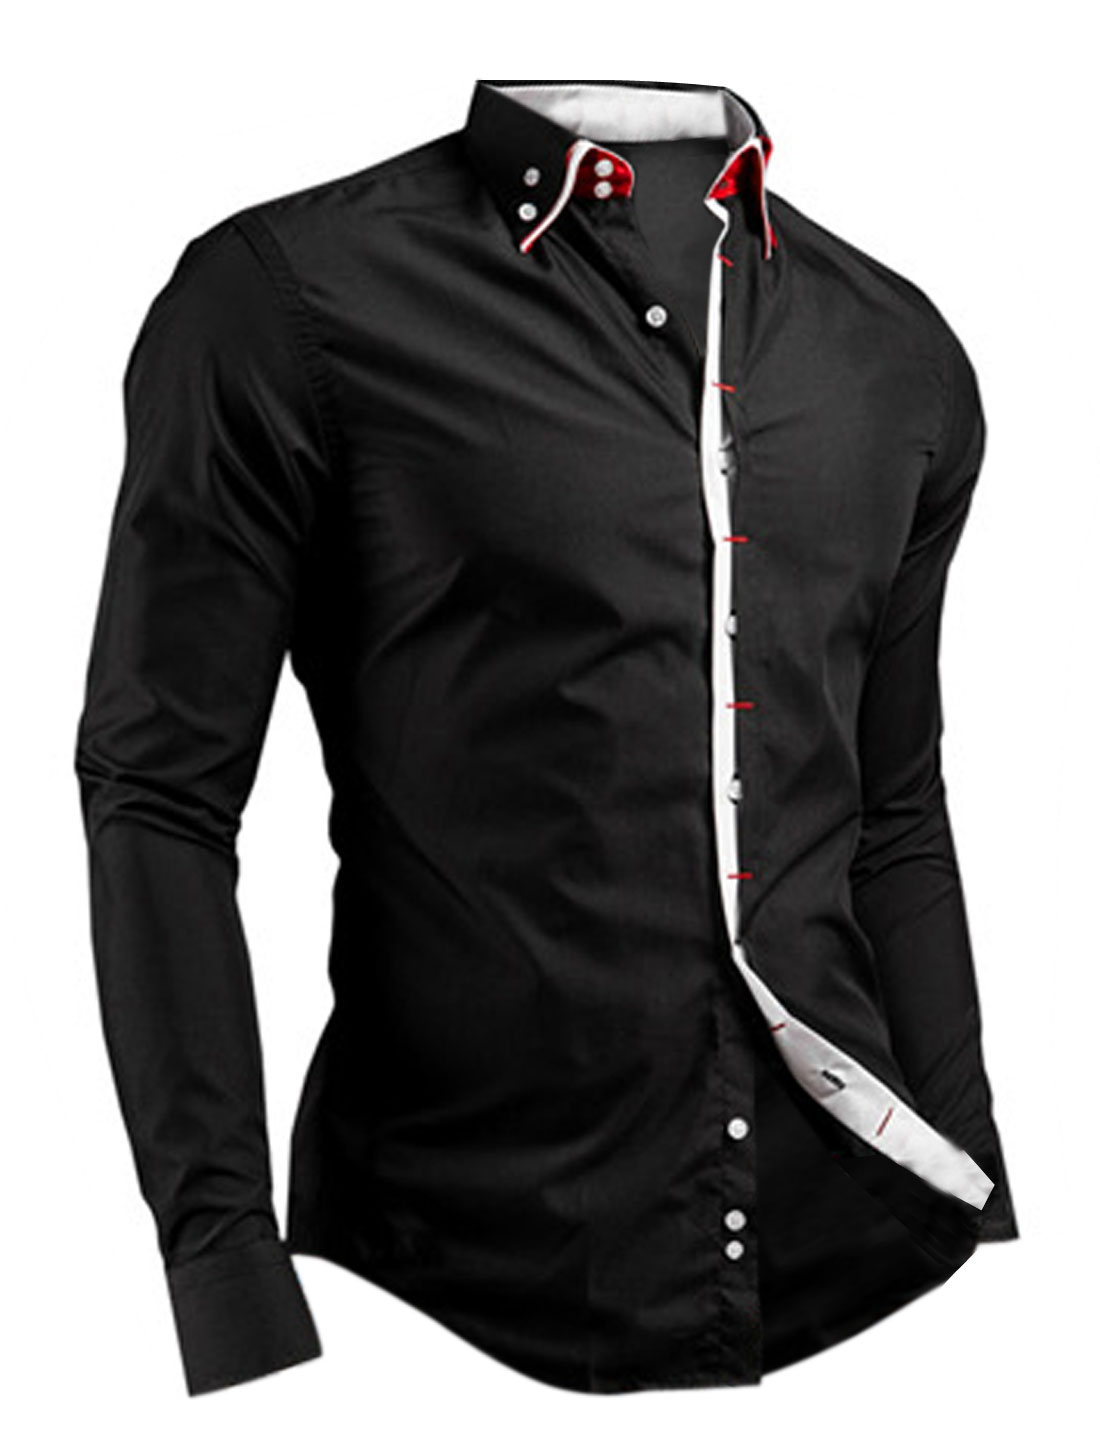 Men Point Collar Contrast Color Placket Casual Button Down Shirt Black M